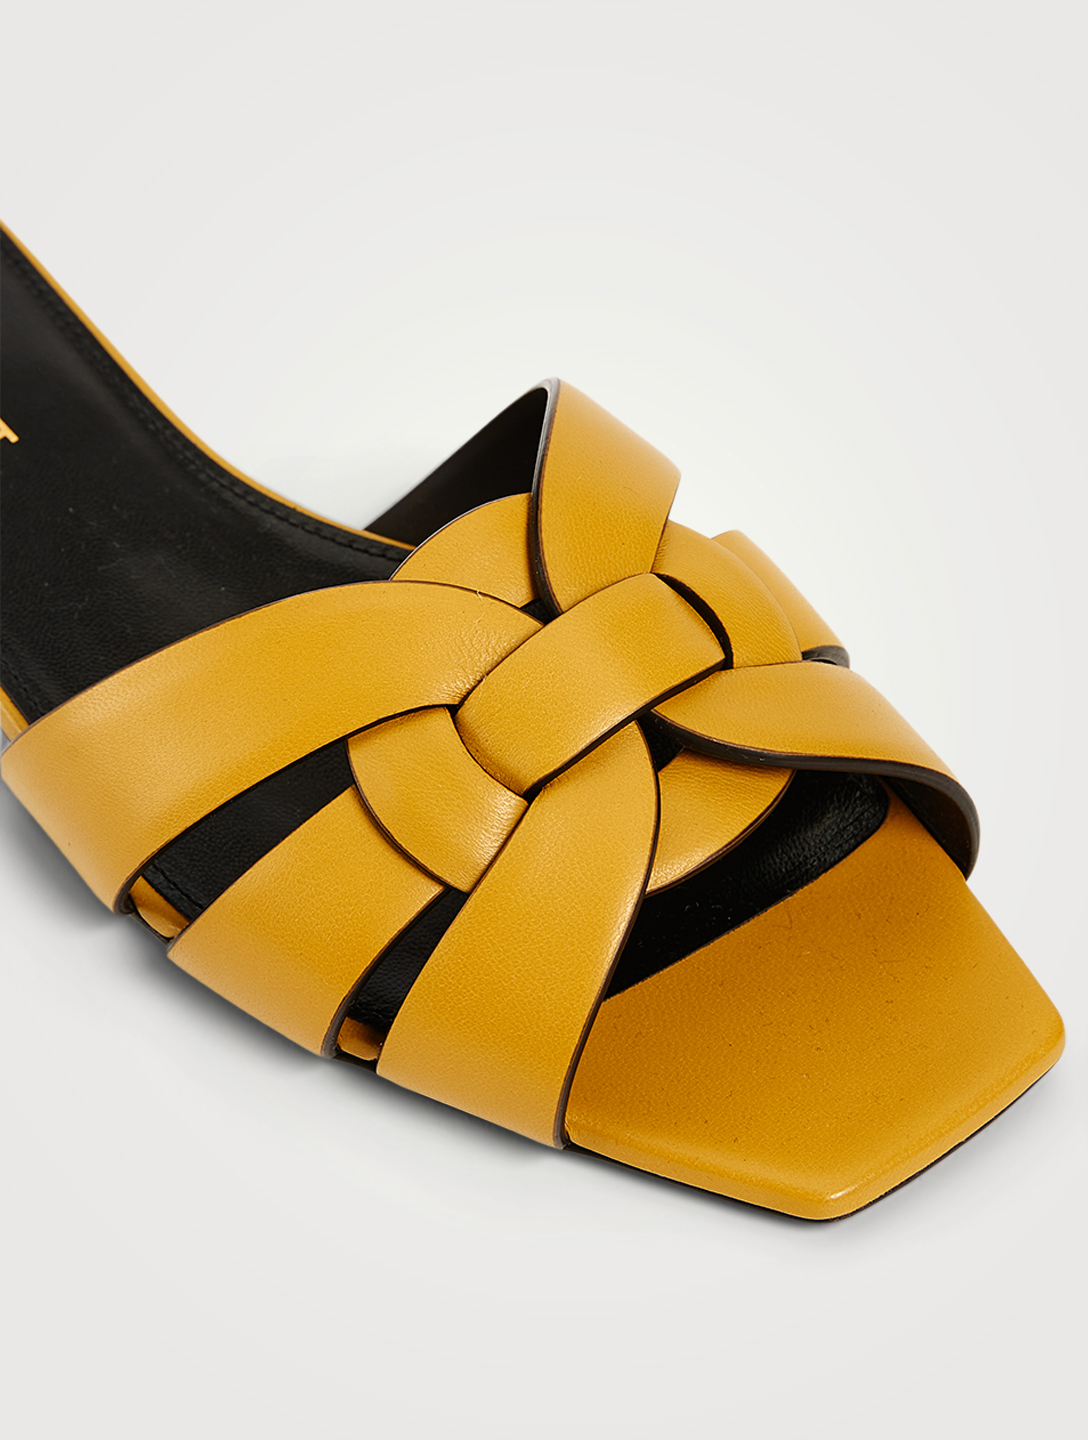 SAINT LAURENT Tribute Leather Slide Sandals Women's Yellow